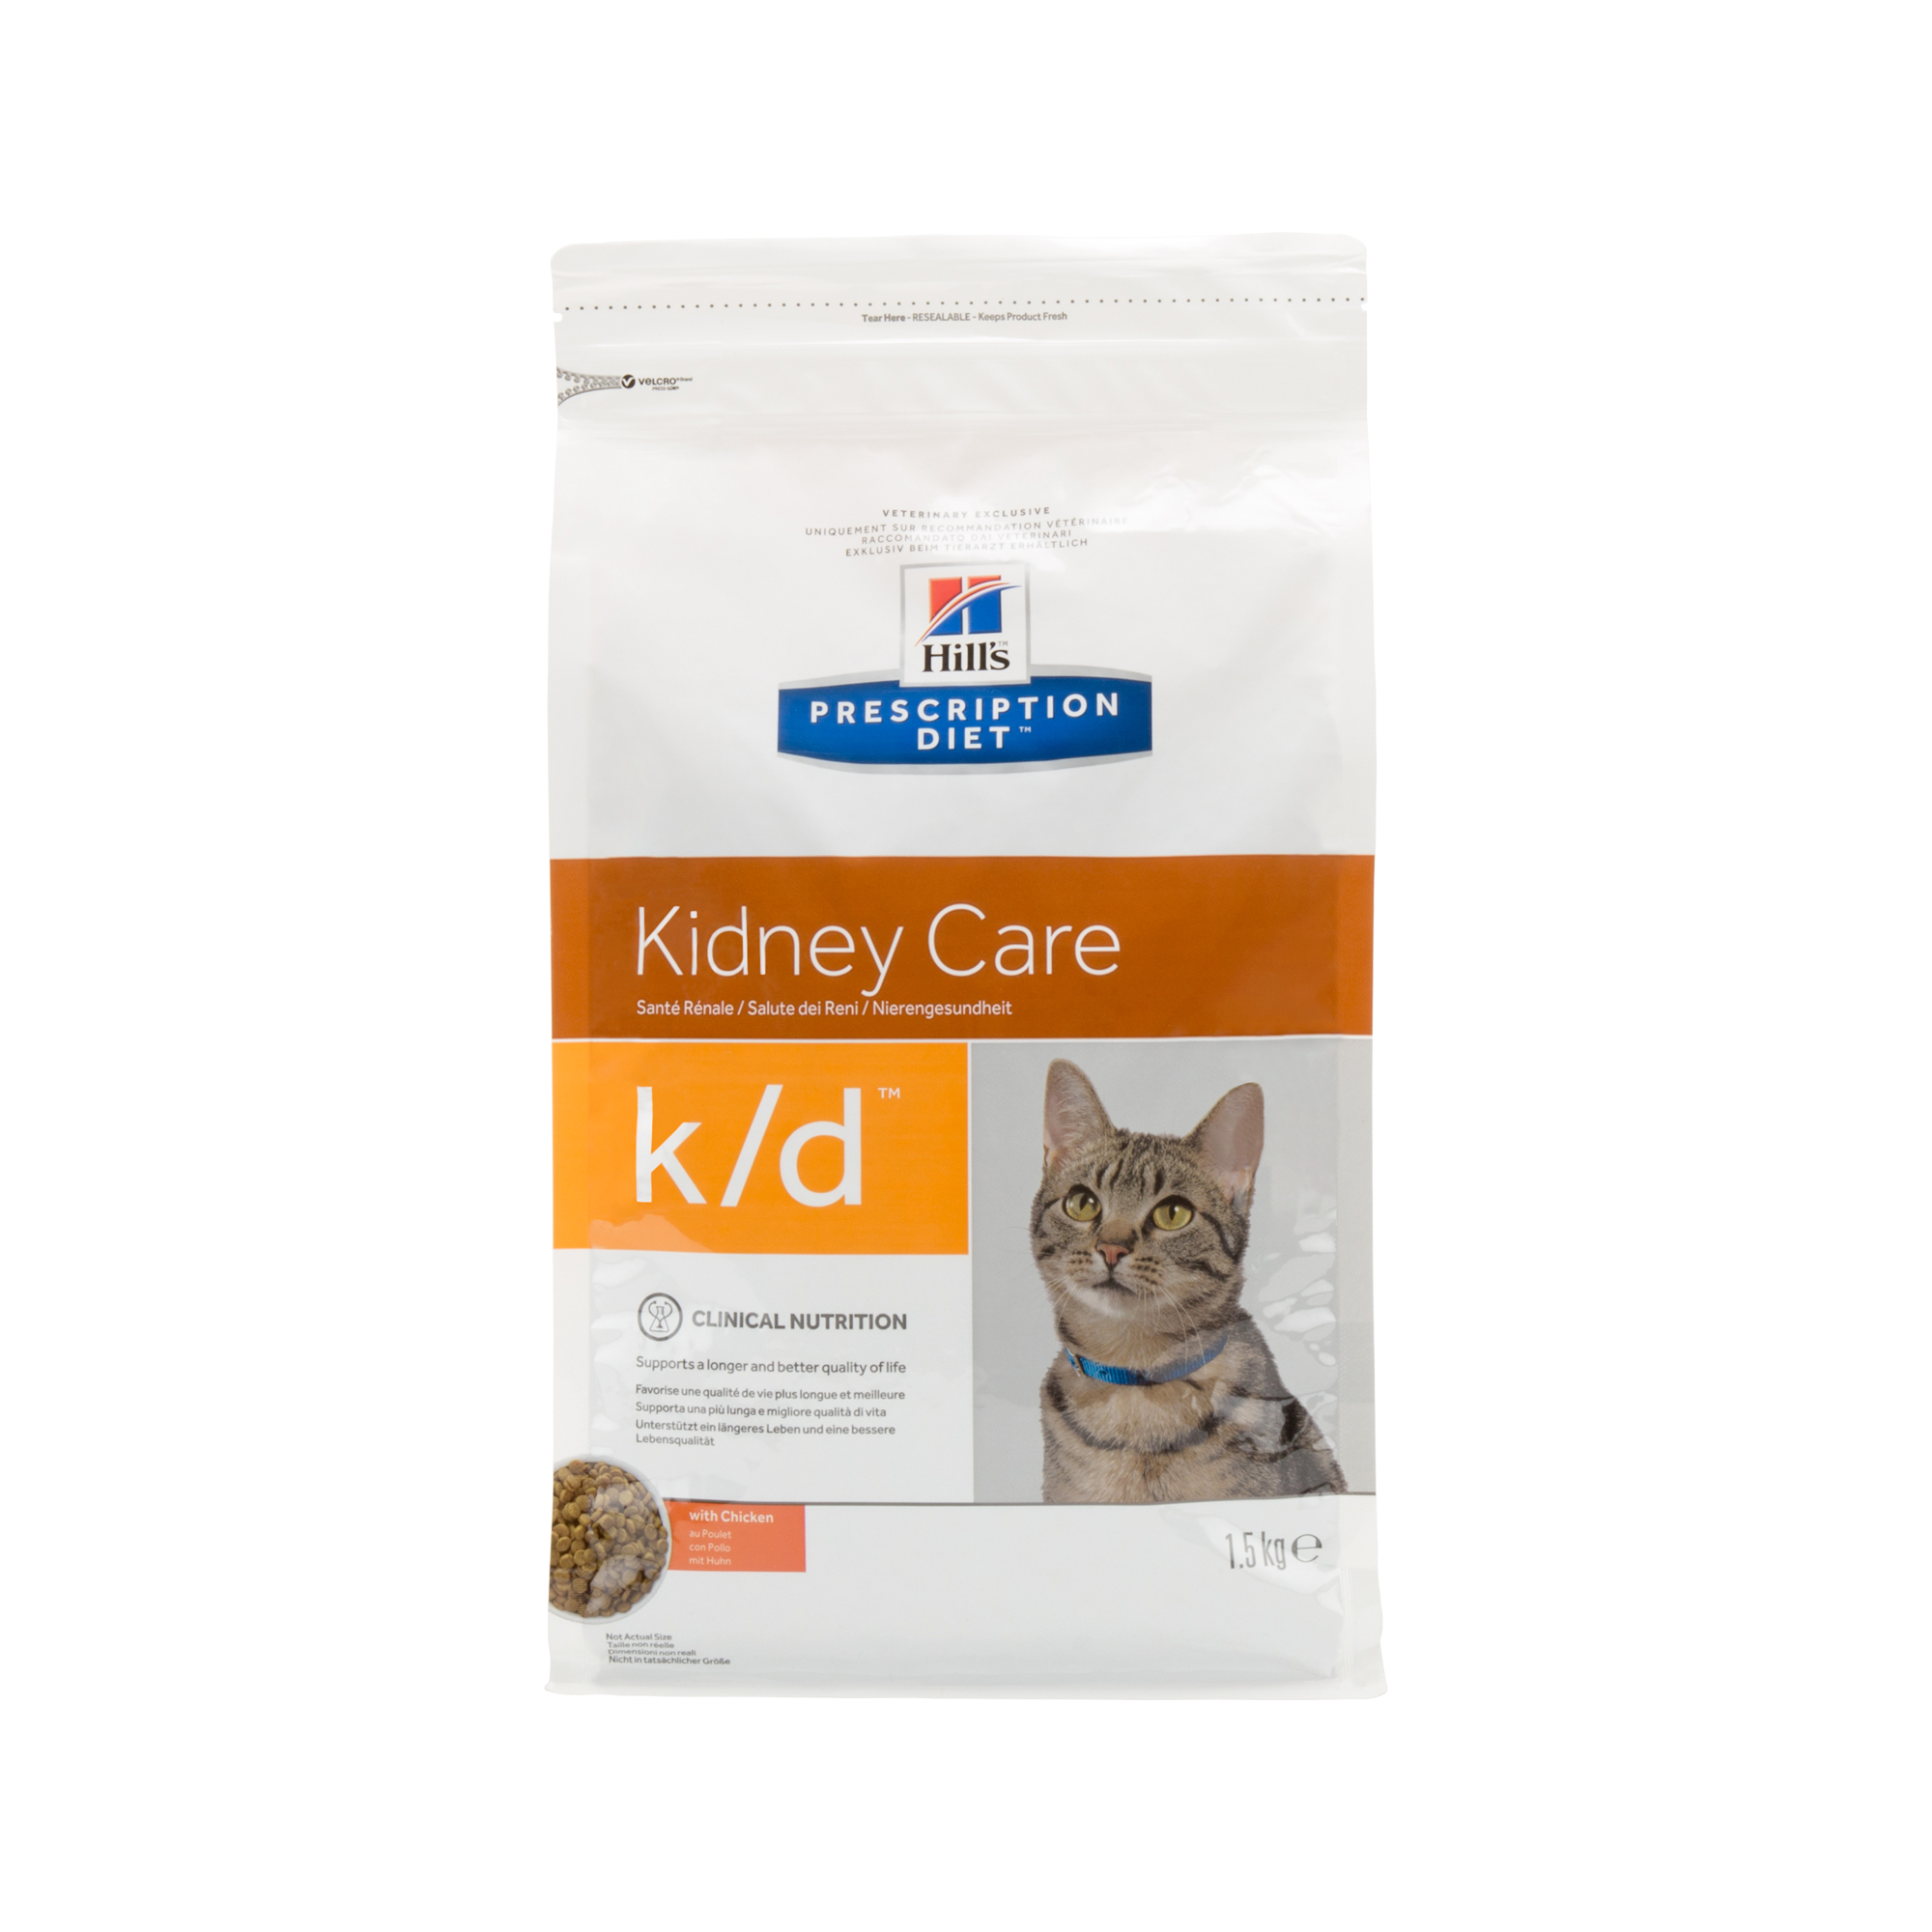 Hill's Prescription Diet k/d Kidney Care Katzenfutter - Huhn